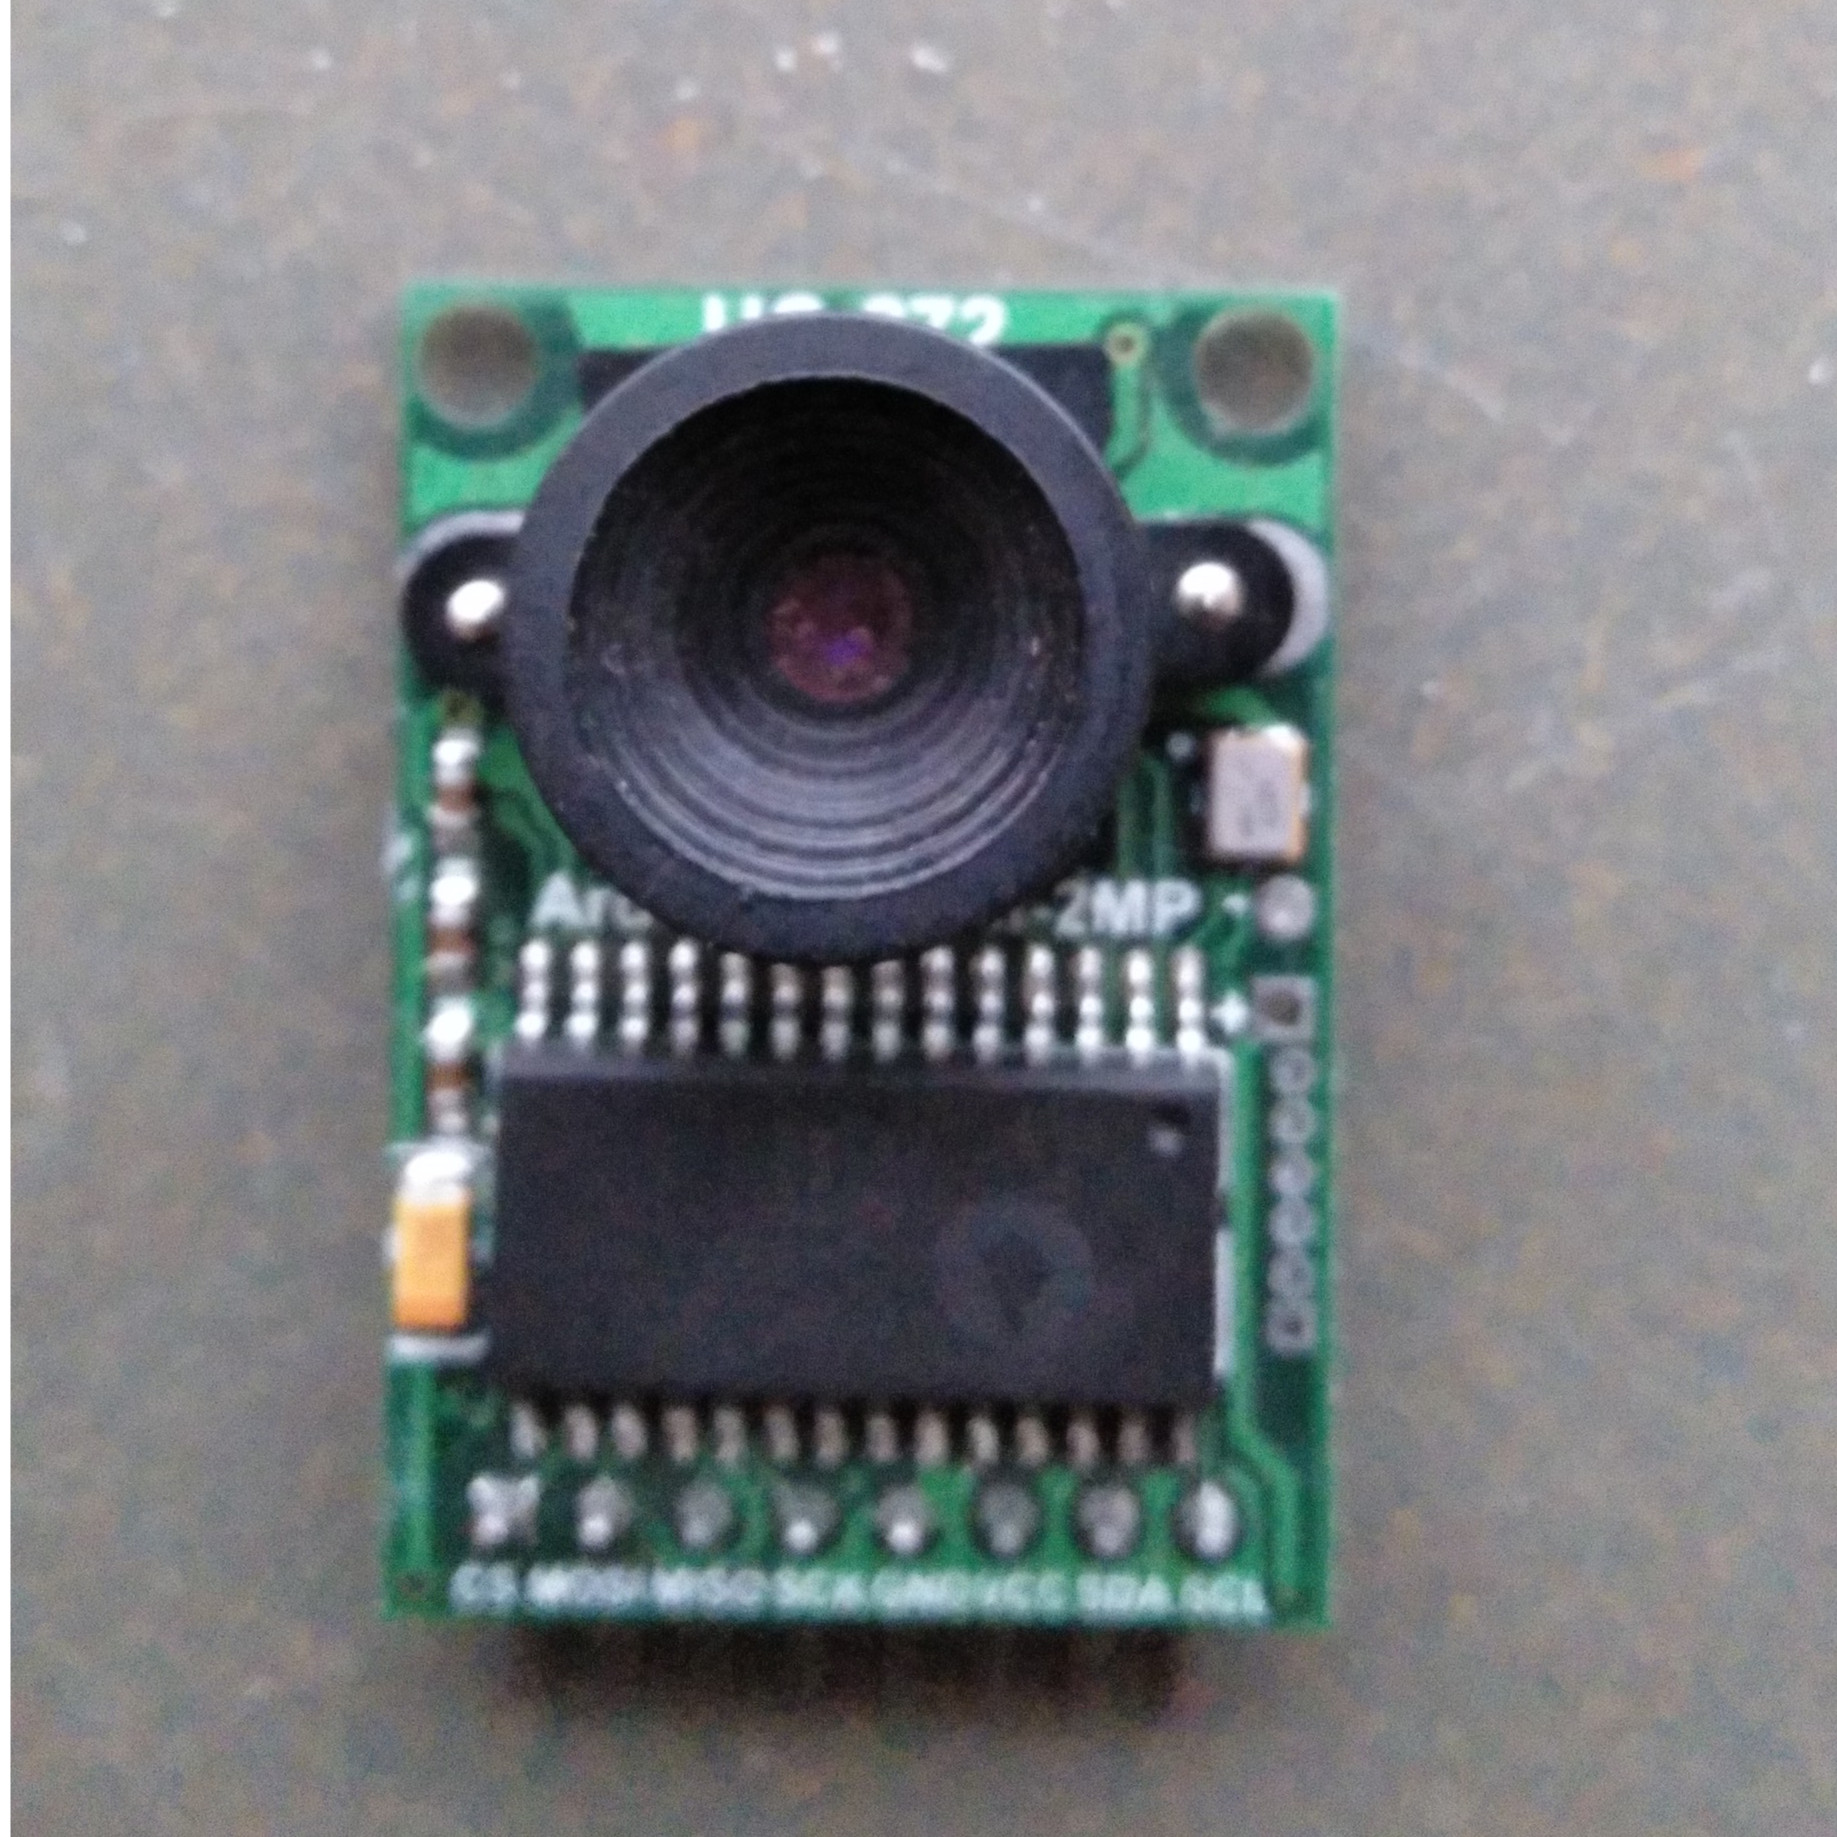 Different Arducam mini 2MP OV2640 versions problems with